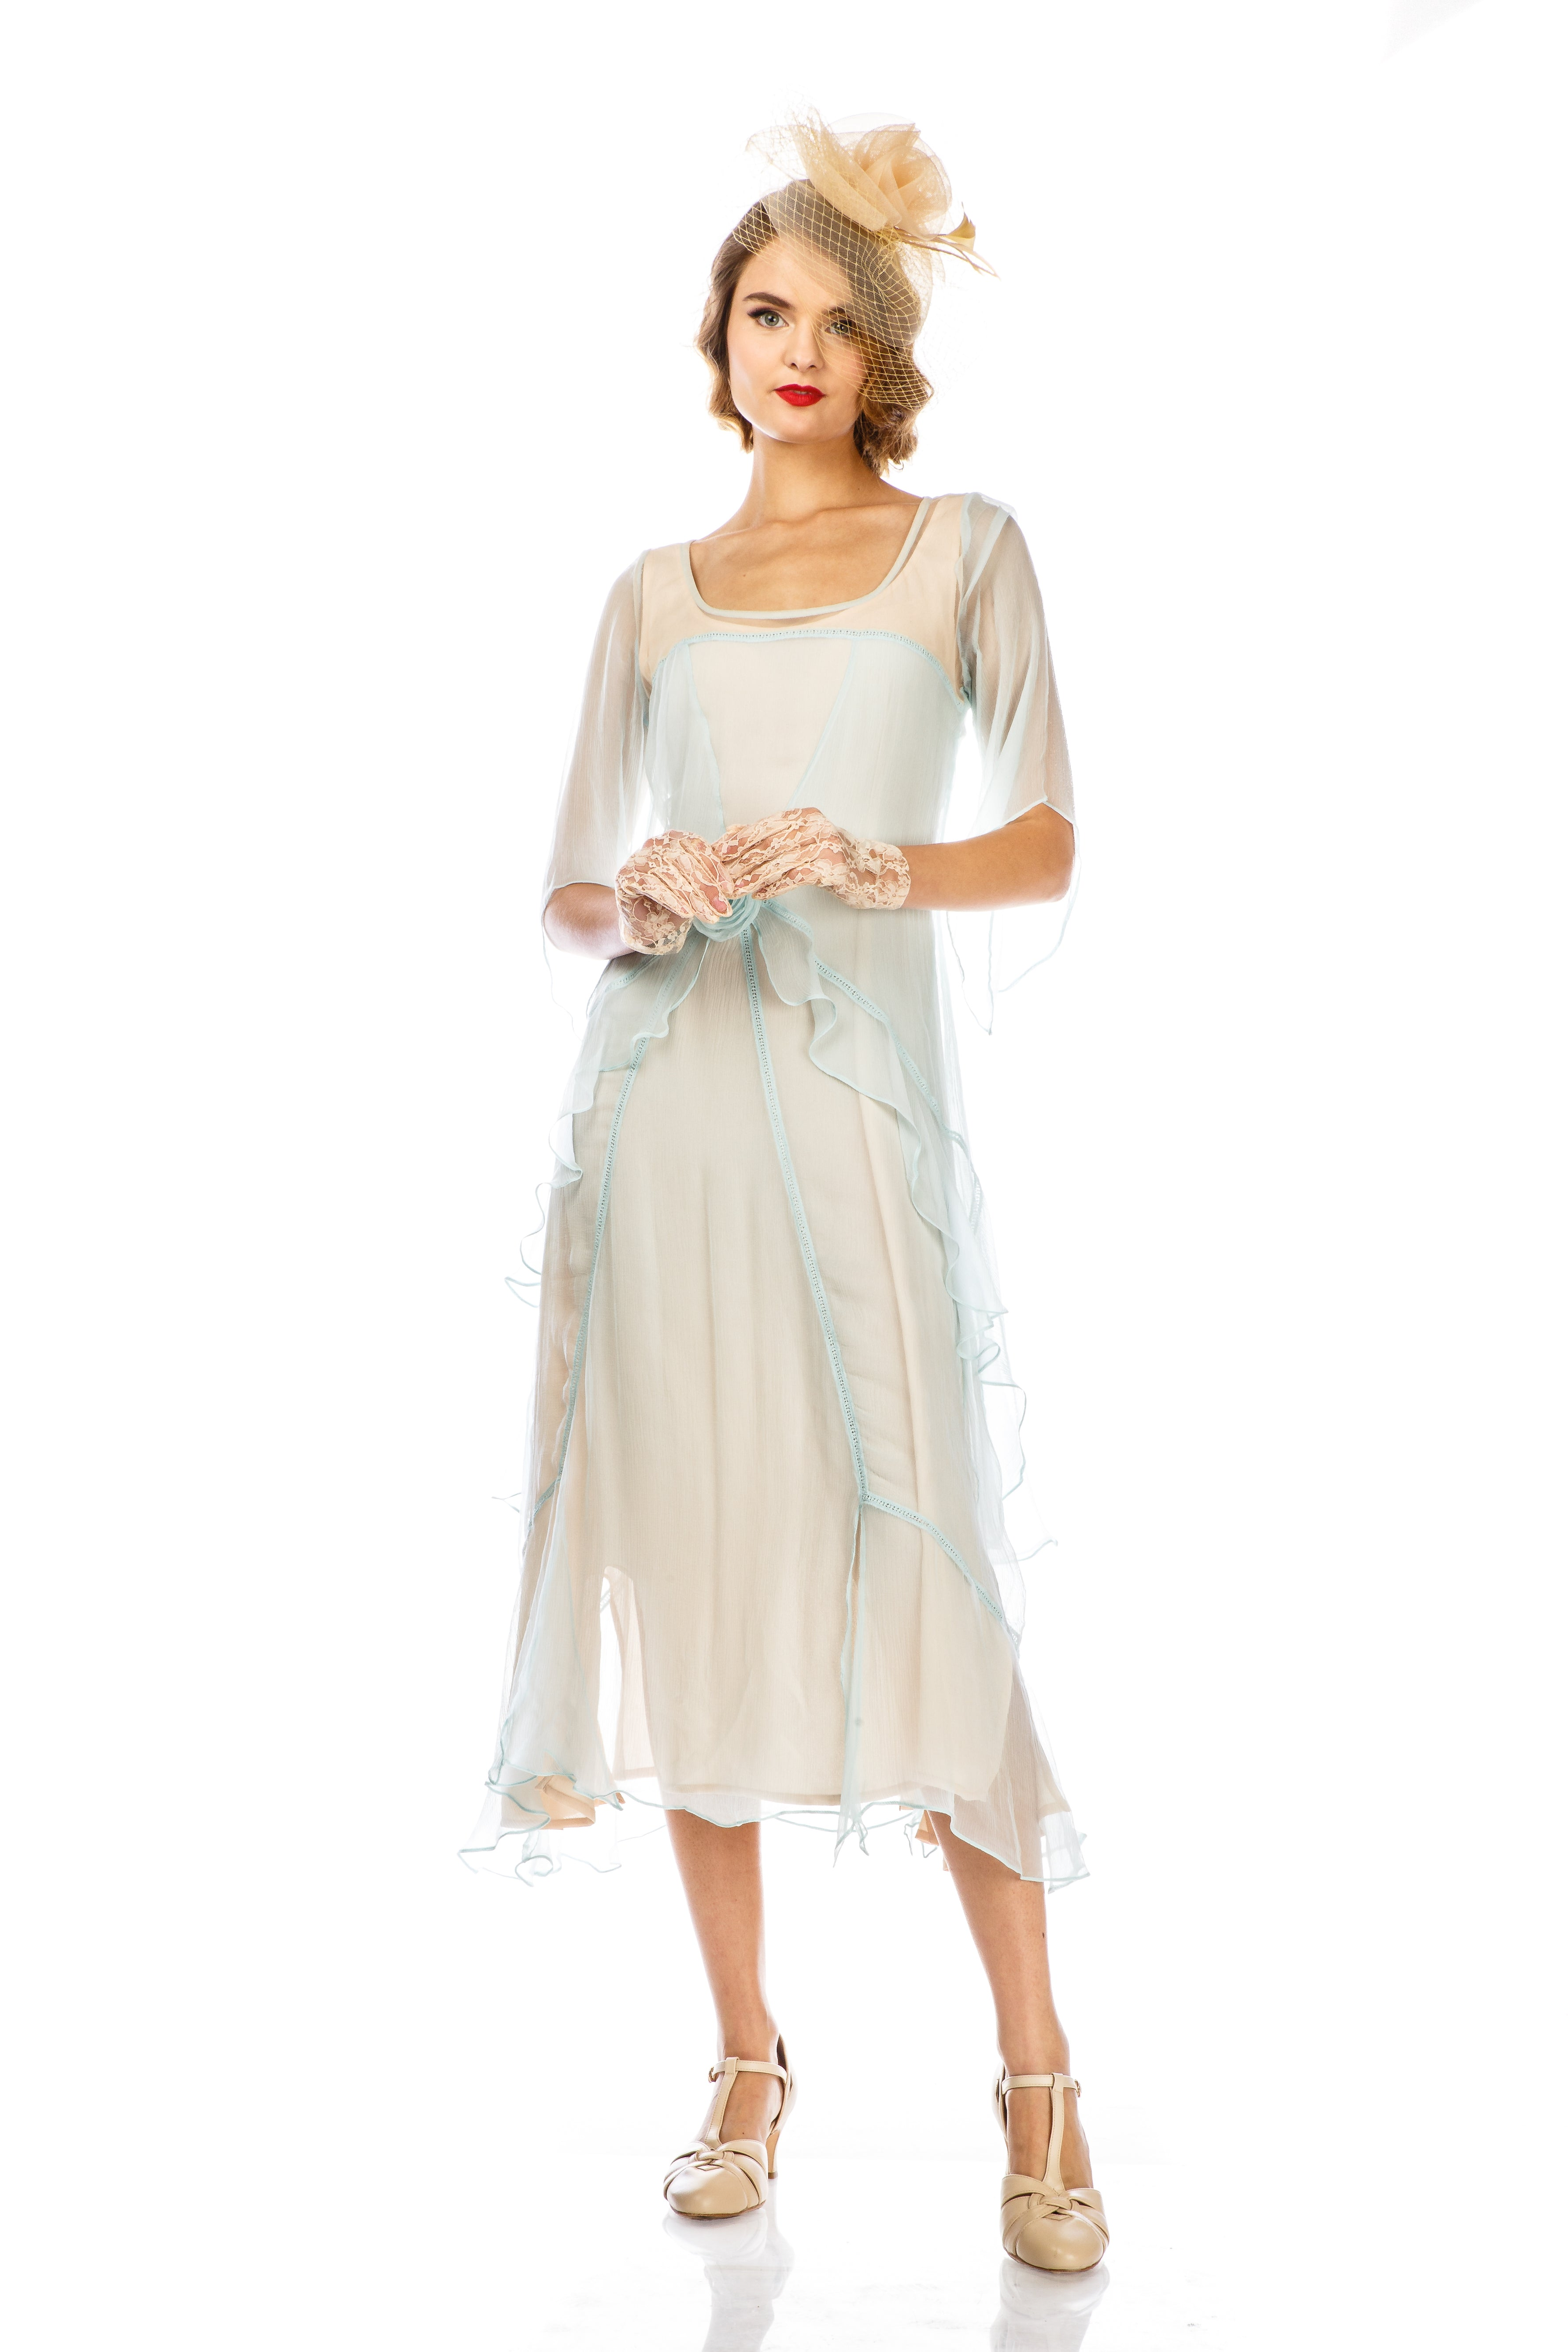 1920s Afternoon Dresses, White Tea Dresses Great Gatsby Party Dress in Nude Mint by Nataya $228.00 AT vintagedancer.com